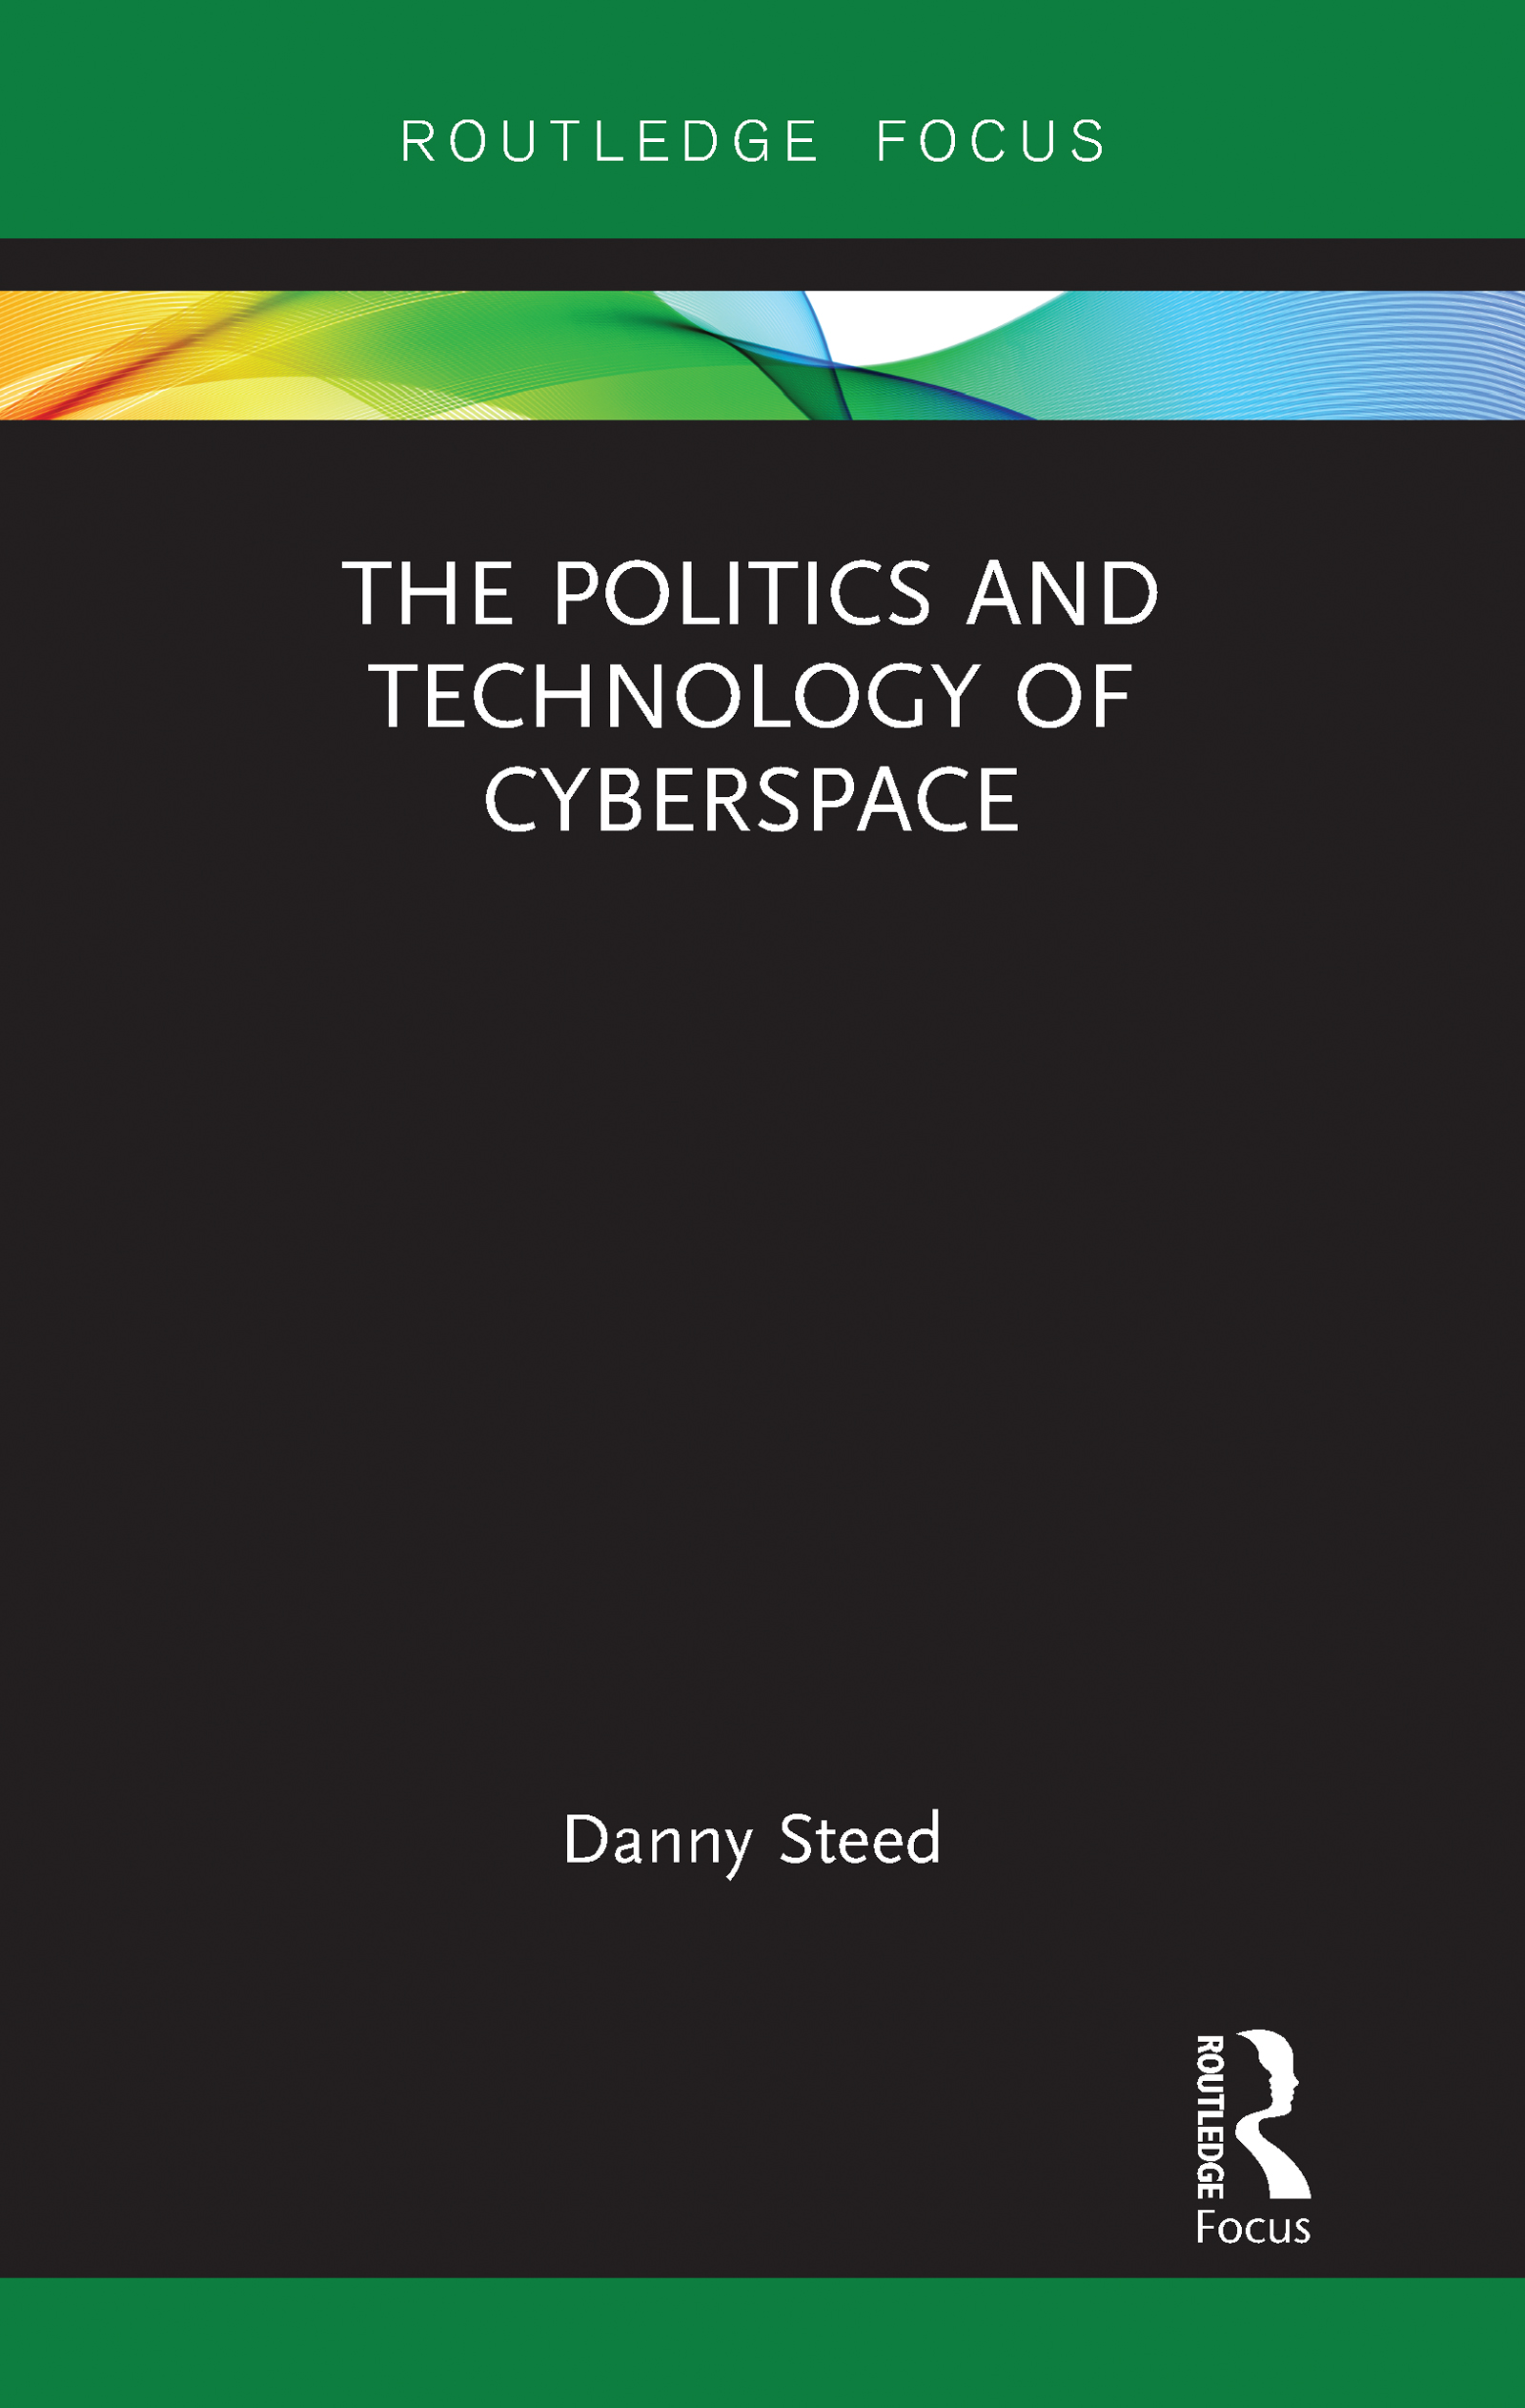 The Politics and Technology of Cyberspace